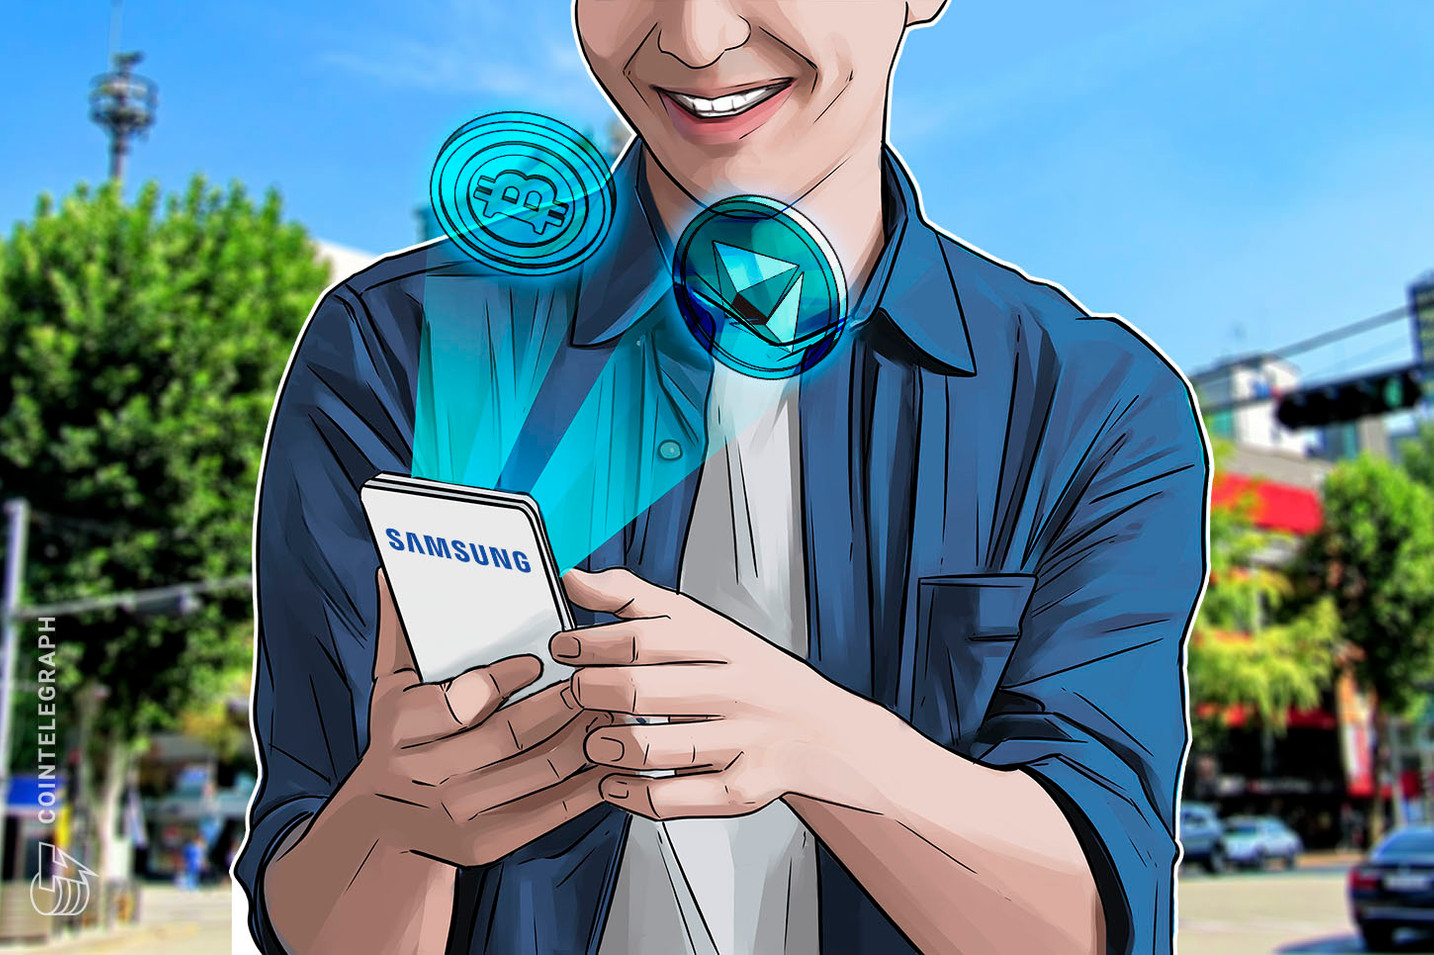 Samsung Announces Galaxy S10 Crypto Partners, Bitcoin and Ethereum Support